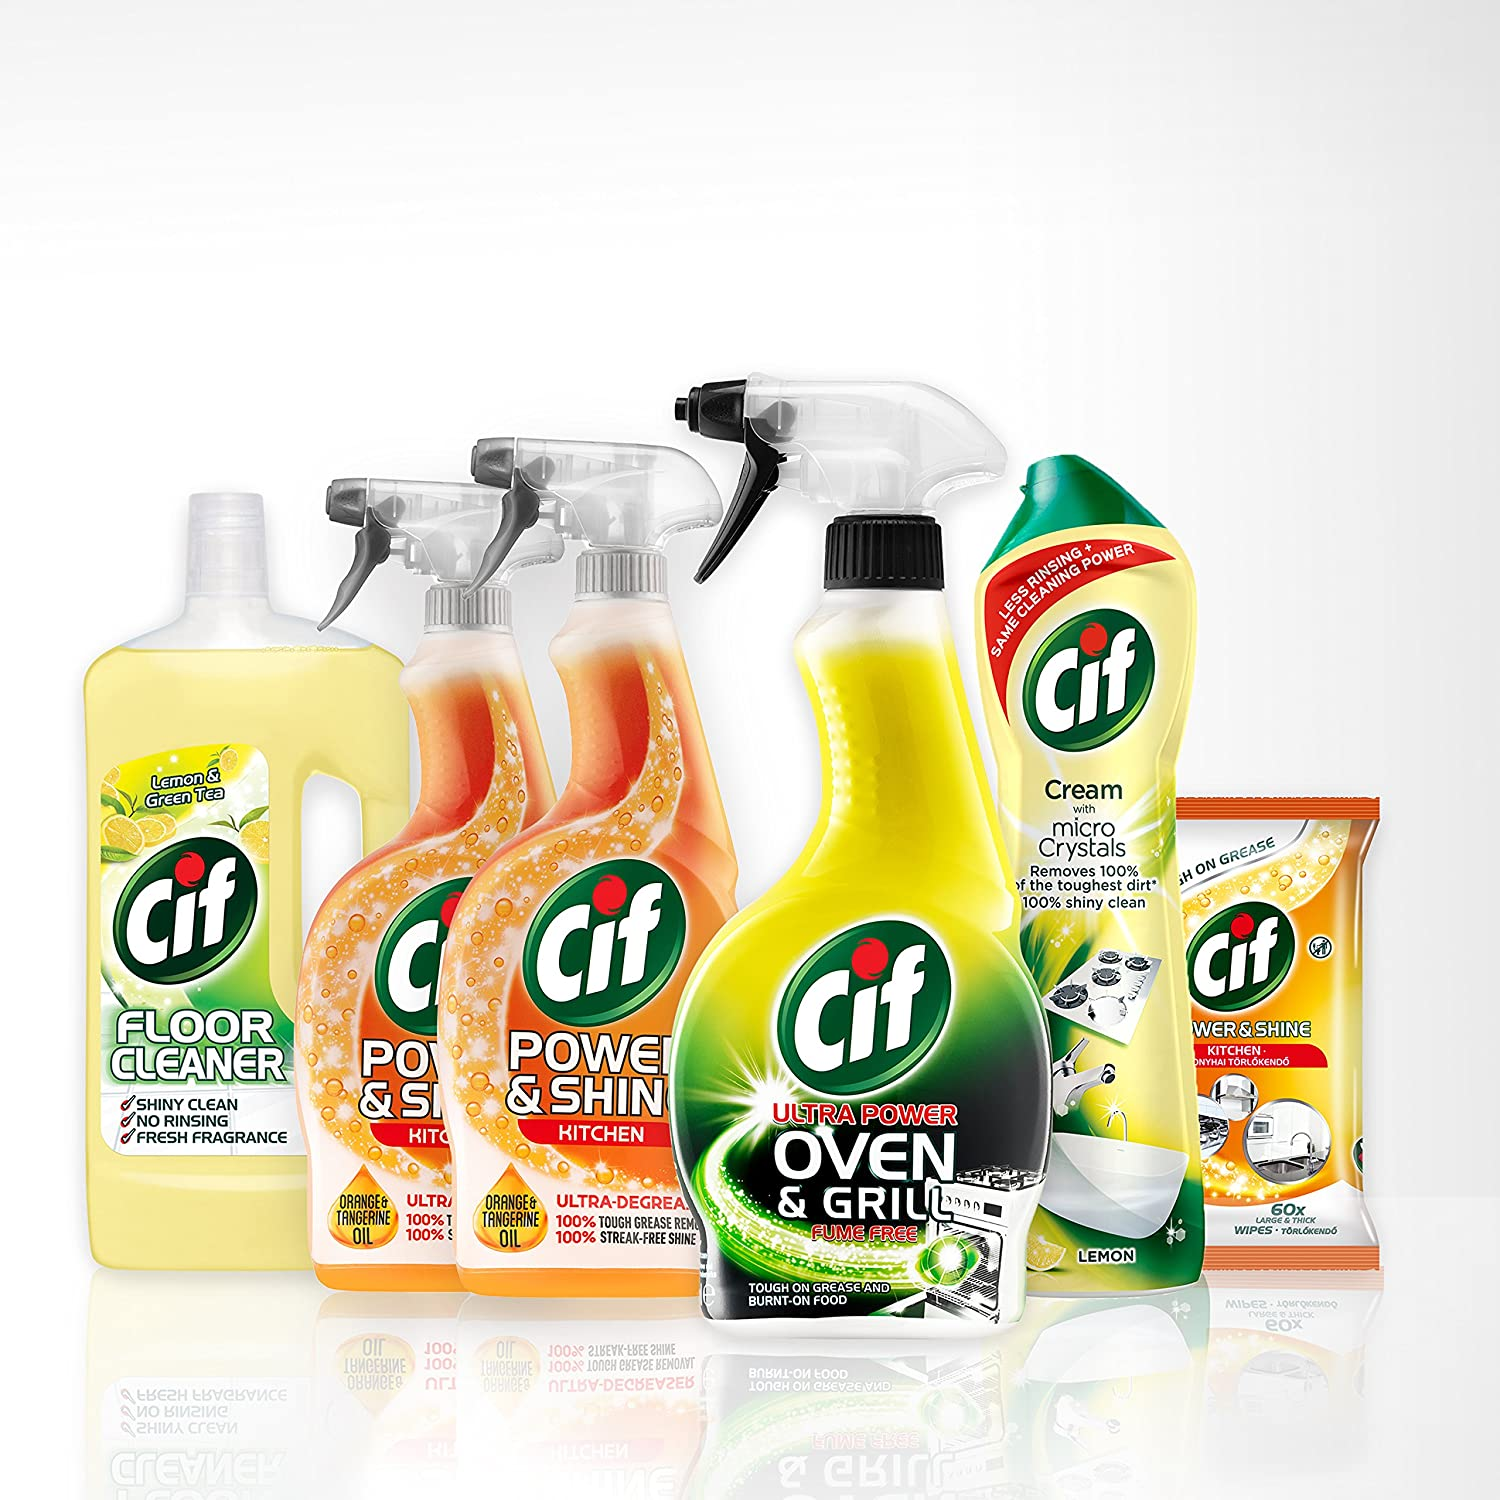 Cif Essential Kitchen Cleaning Kit, 6 items Unilever UK Limited 8710447343920